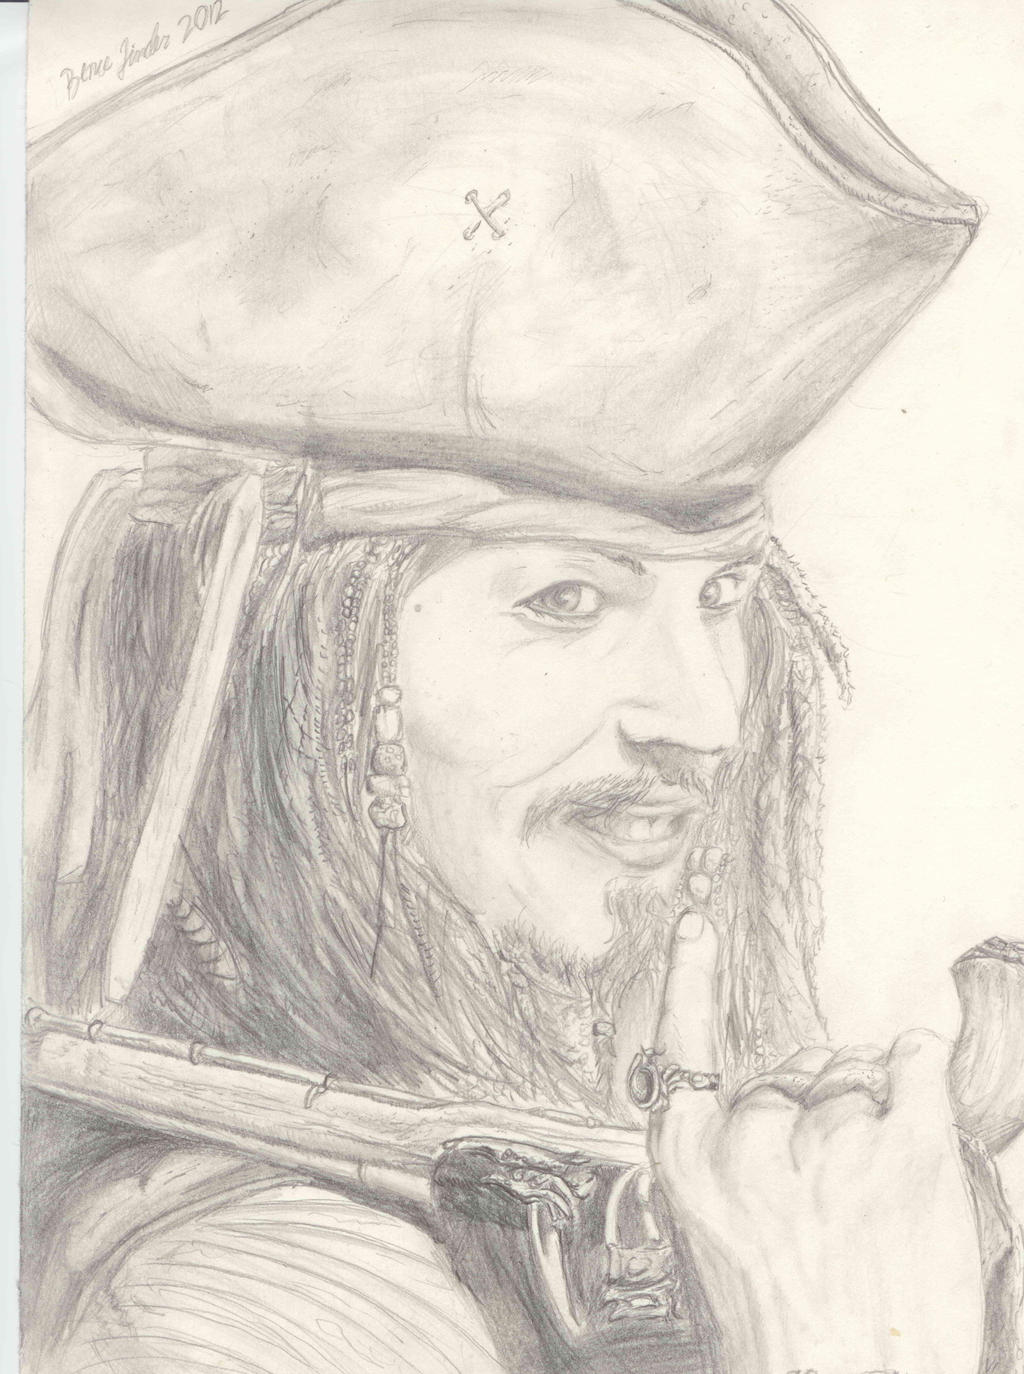 Jack Sparrow Pencil Drawing by Nikzt on DeviantArt